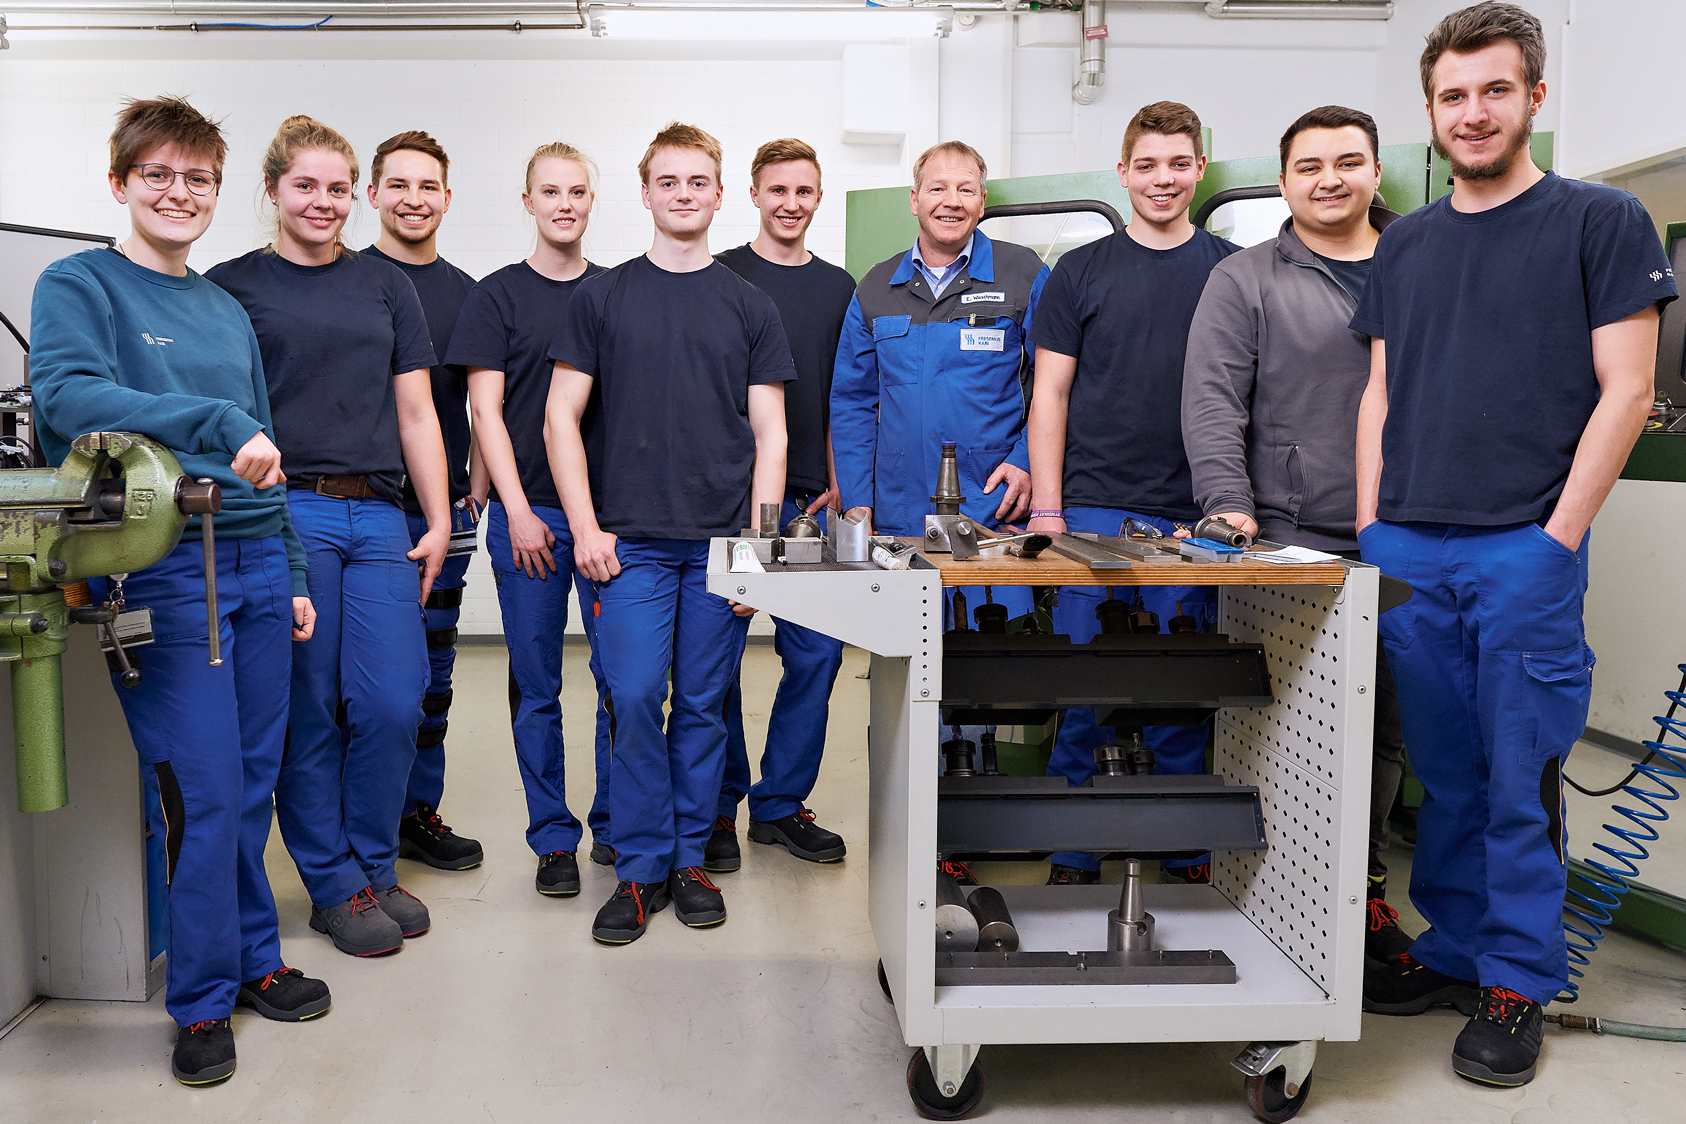 Eric teaches industrial mechanics and mechatronics apprentices in the workshop at the Fresenius Kabi plant in Friedberg, Germany